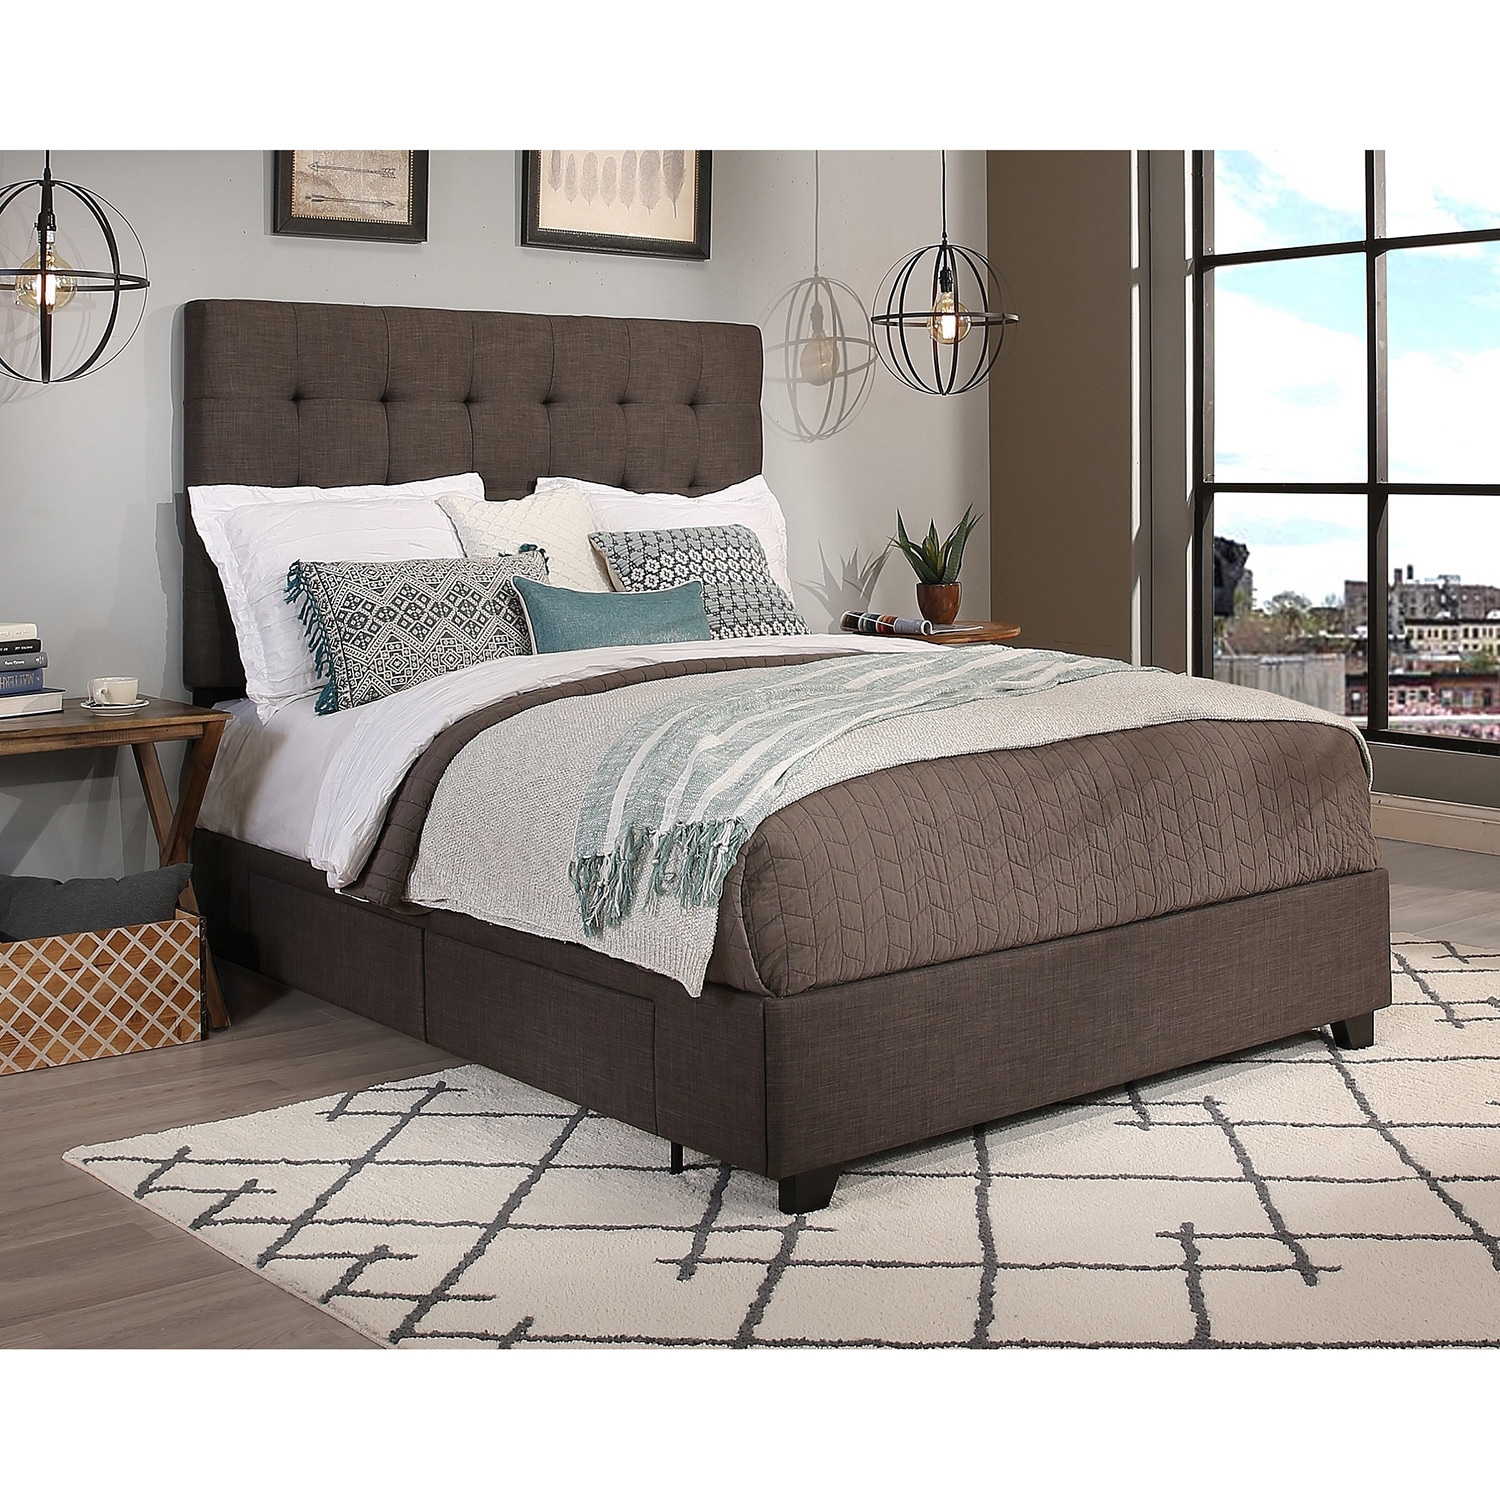 velvet full connie garden product grey shipping tufted queen free overstock headboard abbyson today home